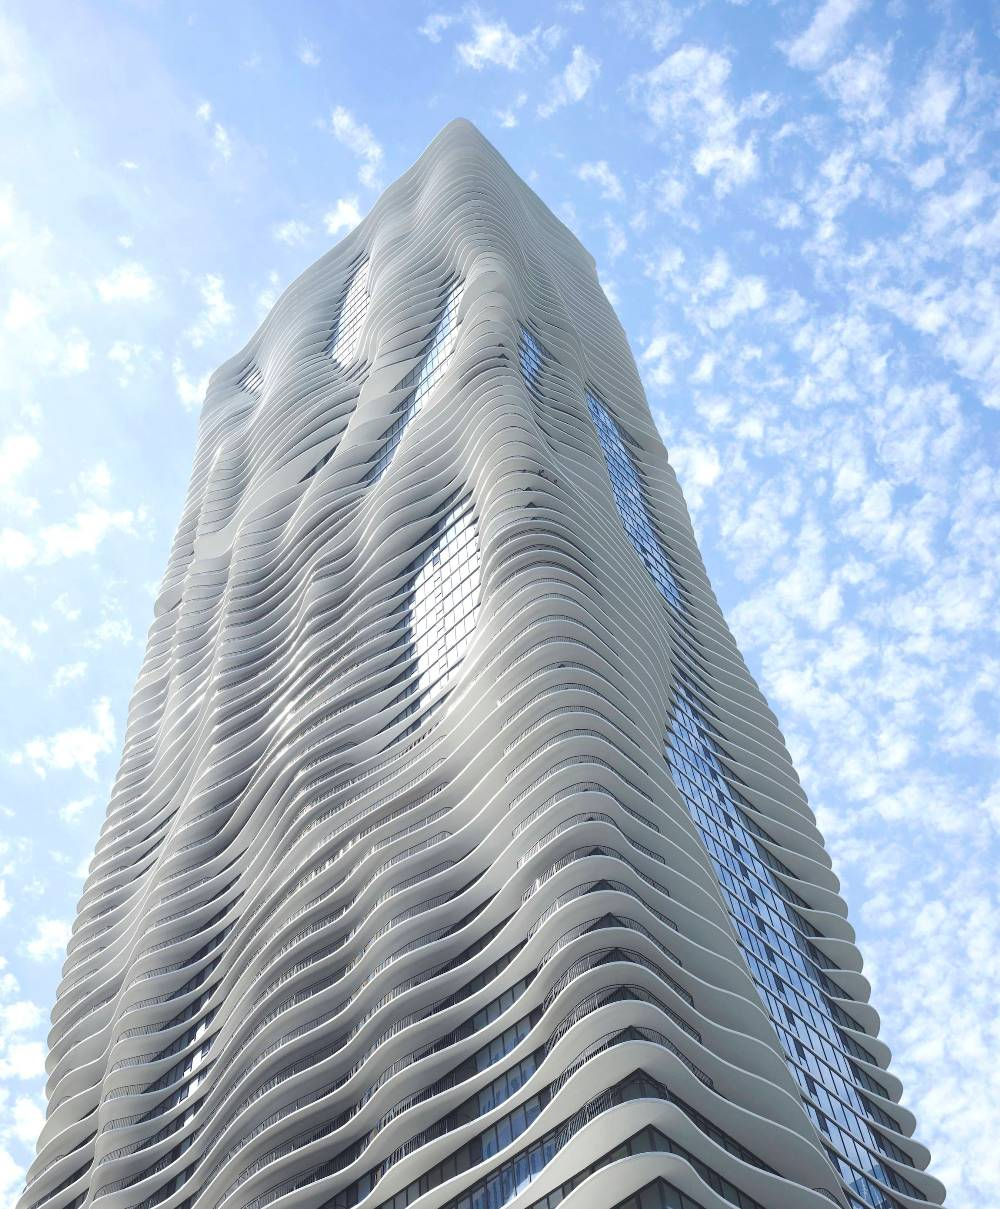 aqua tower chicago Chicagos Astounding Aqua Tower